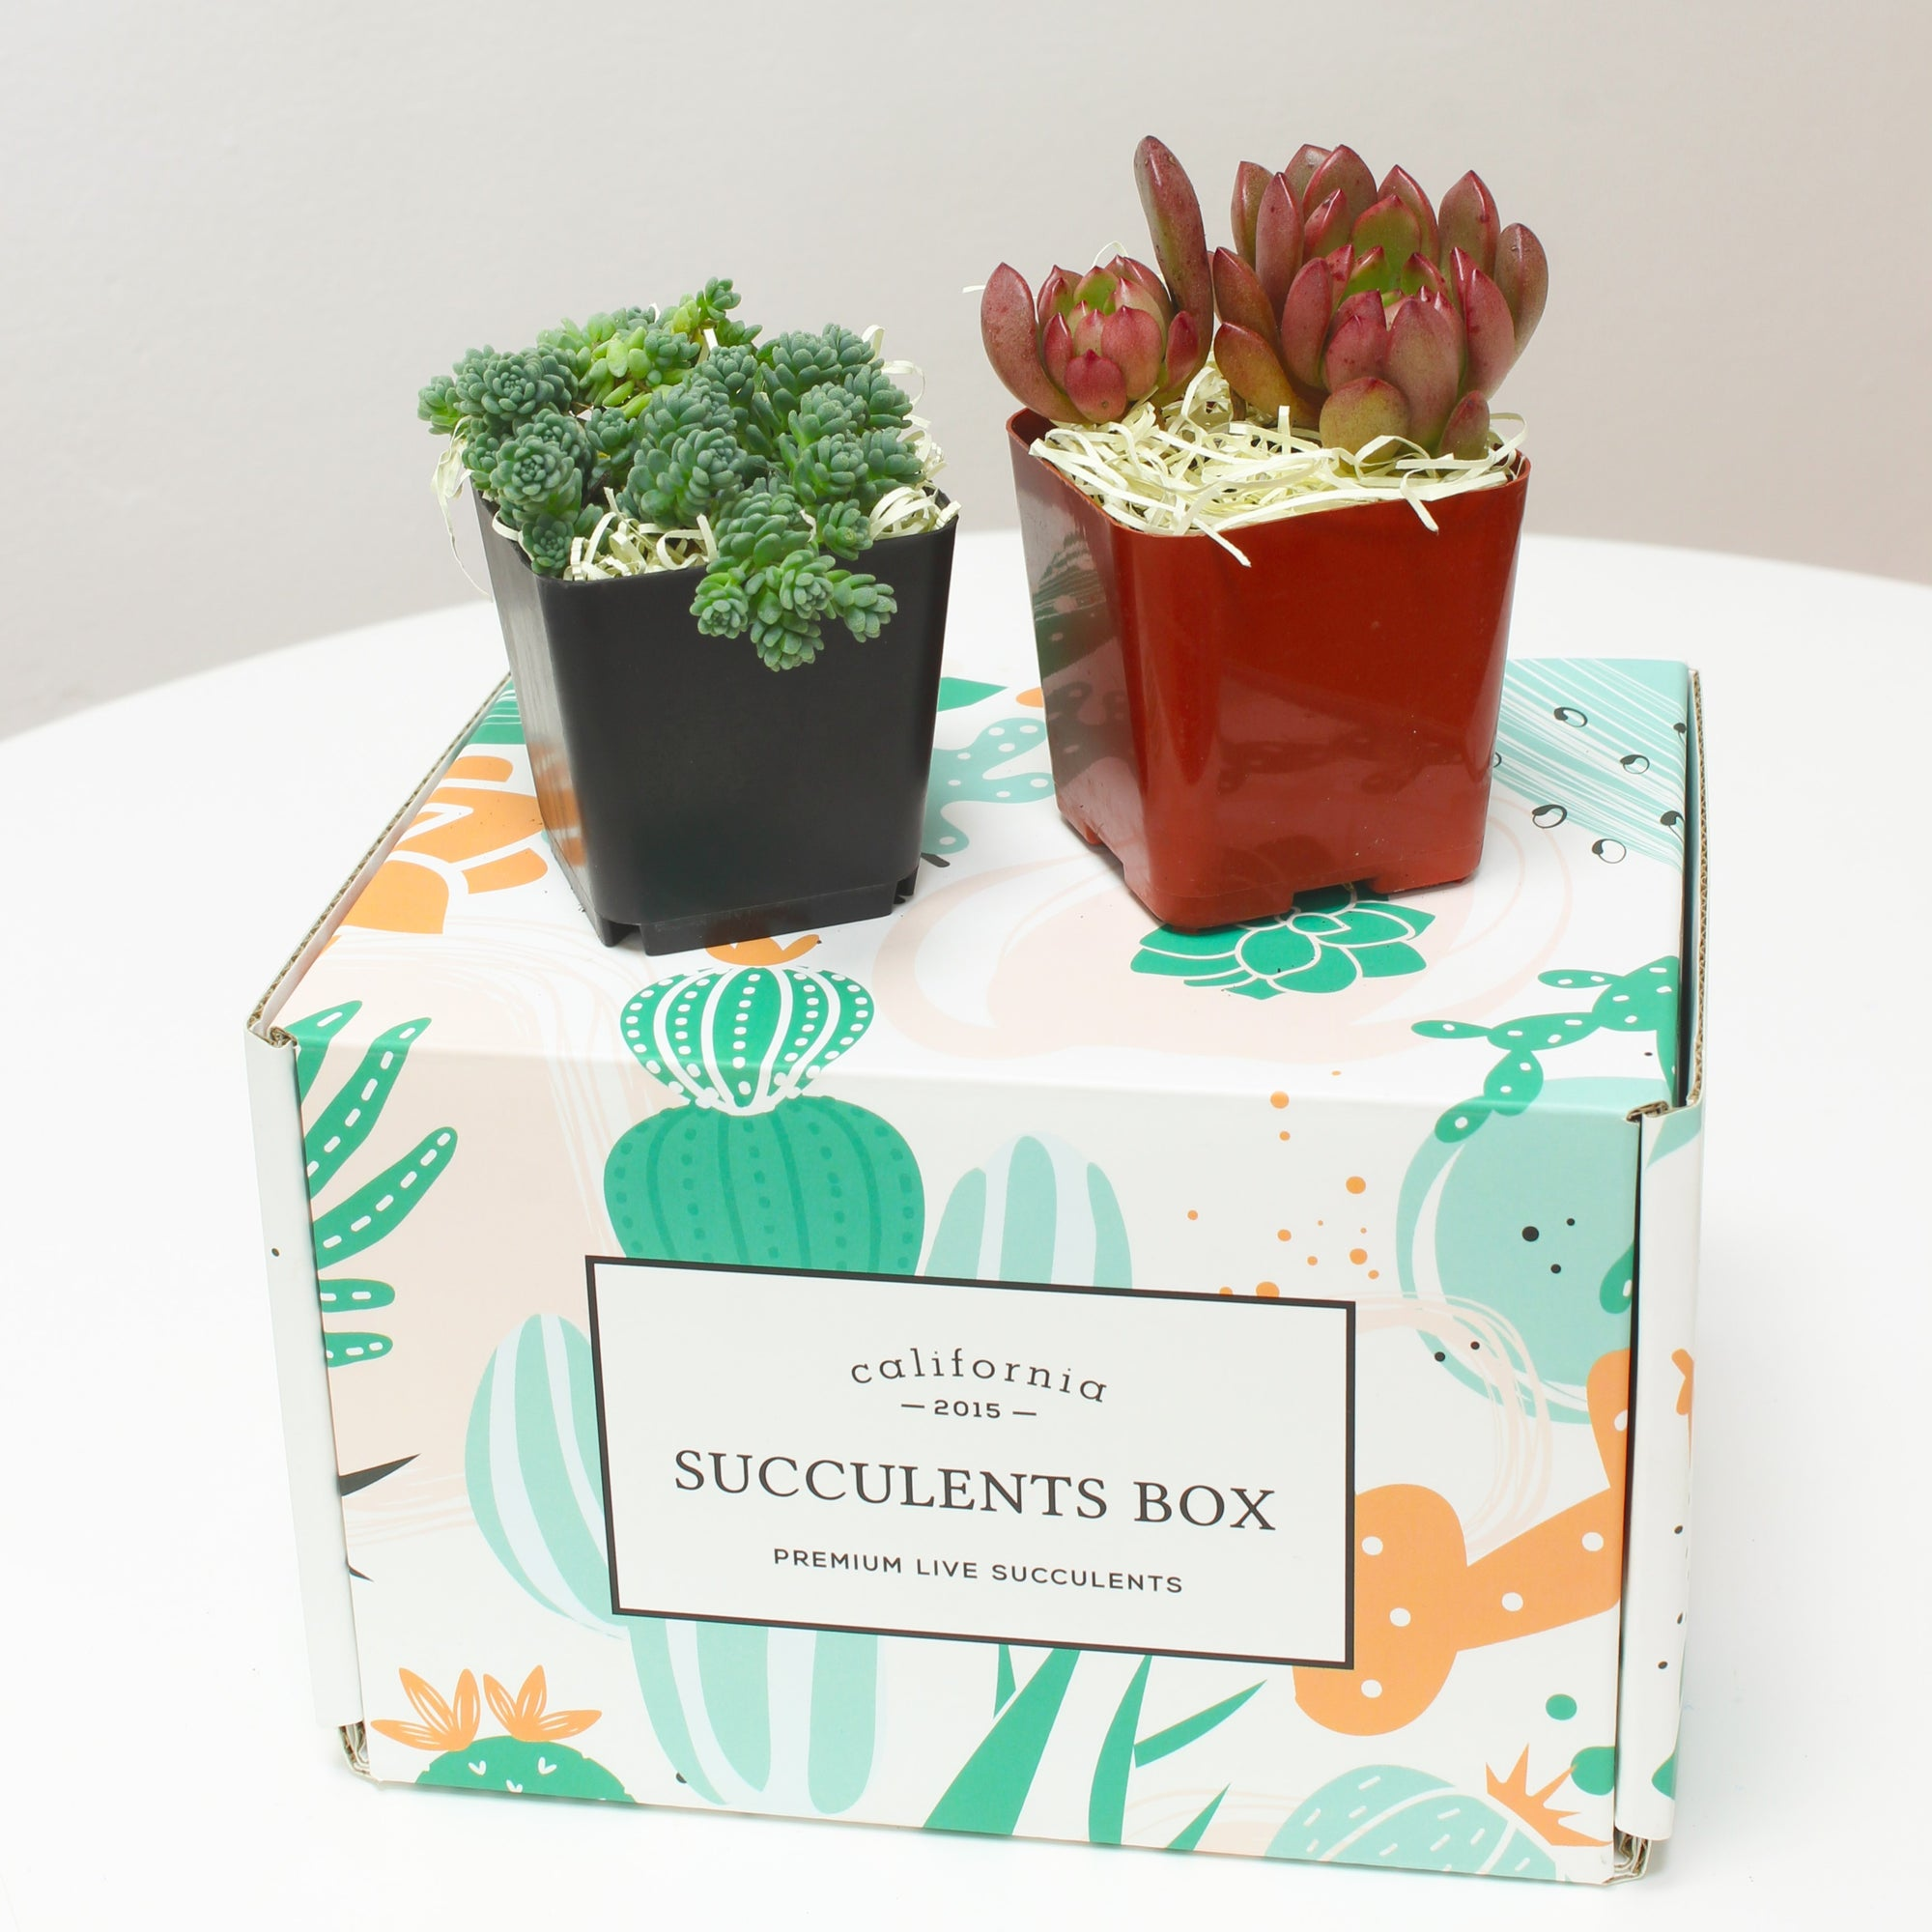 Succulent Subscription Boxes, Succulents Box, Types of Succulent Plants, Succulents for Sale, Succulents in California, Succulents Box with Care Guide